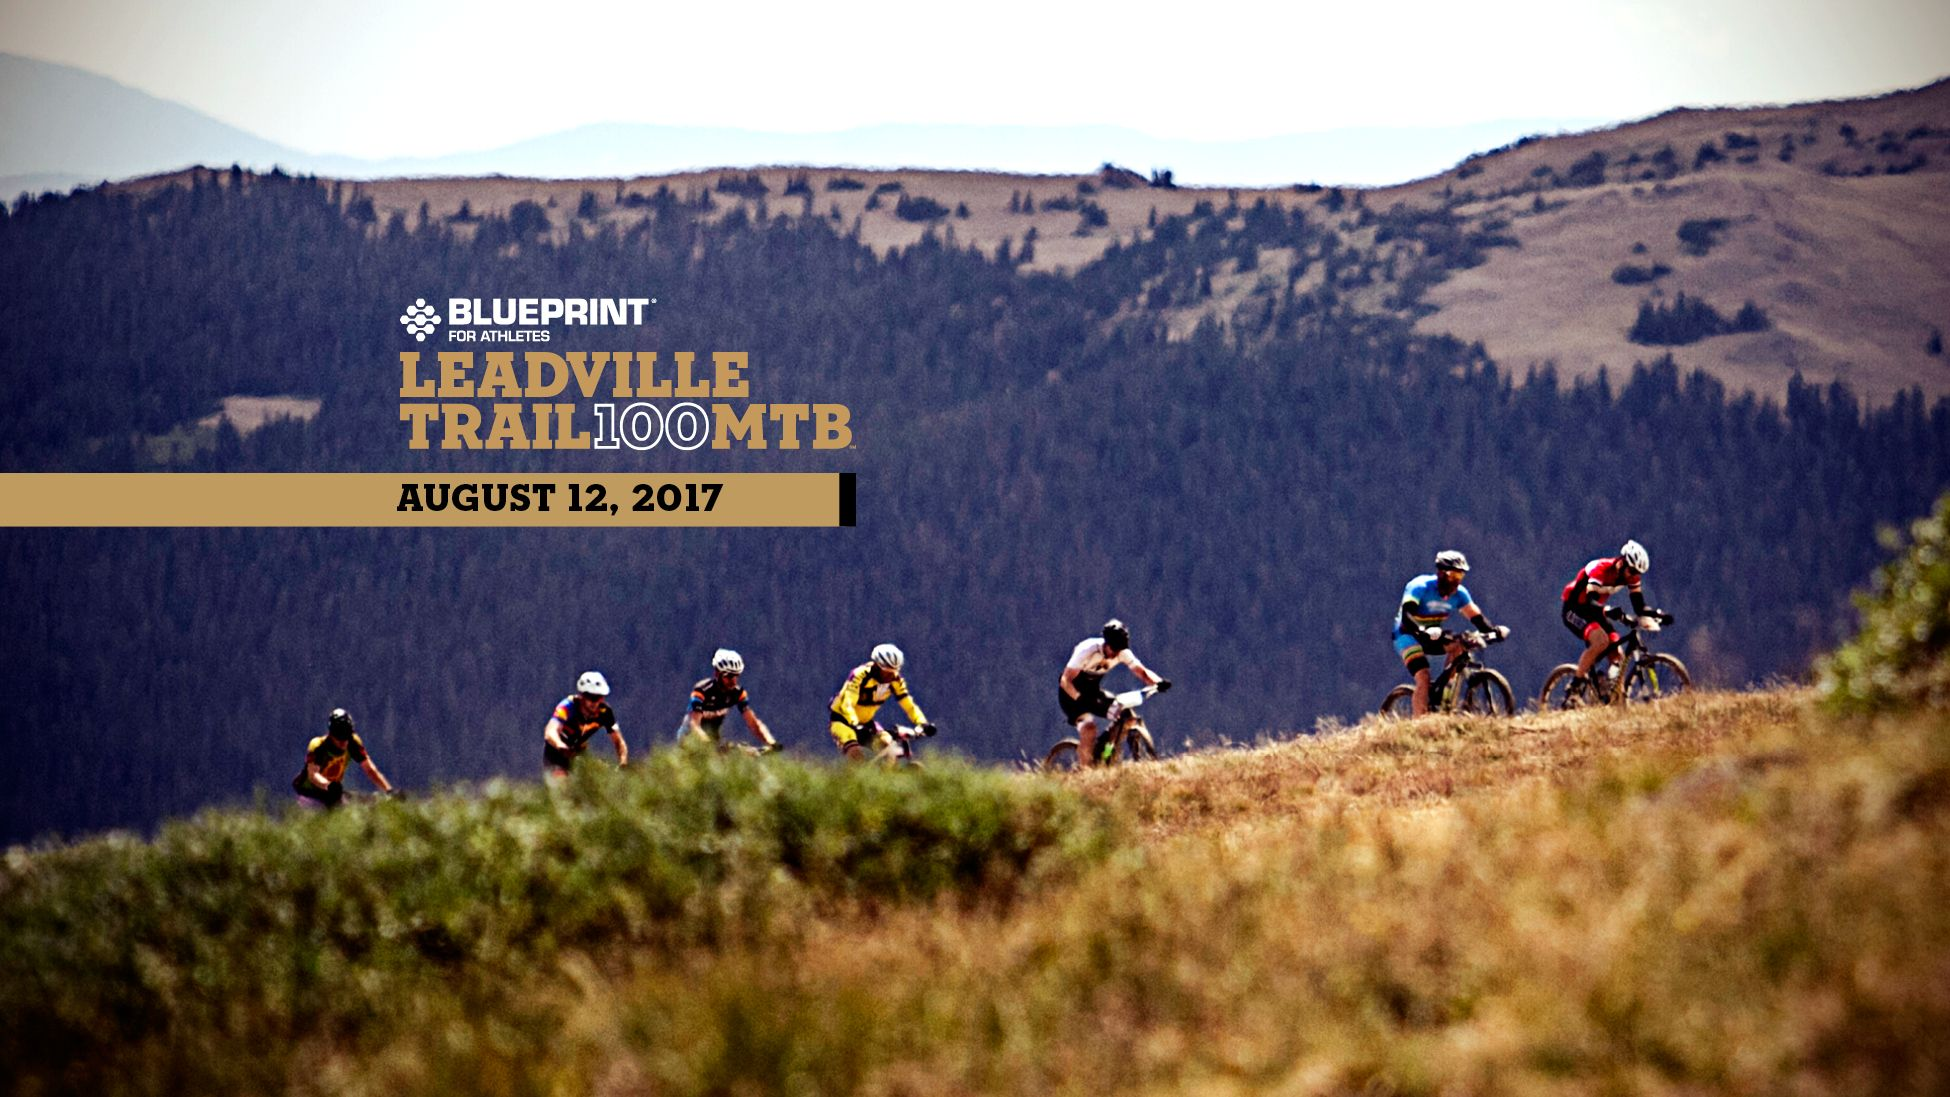 2017 Blueprint for Athletes Leadville Trail 100 MTB Start List